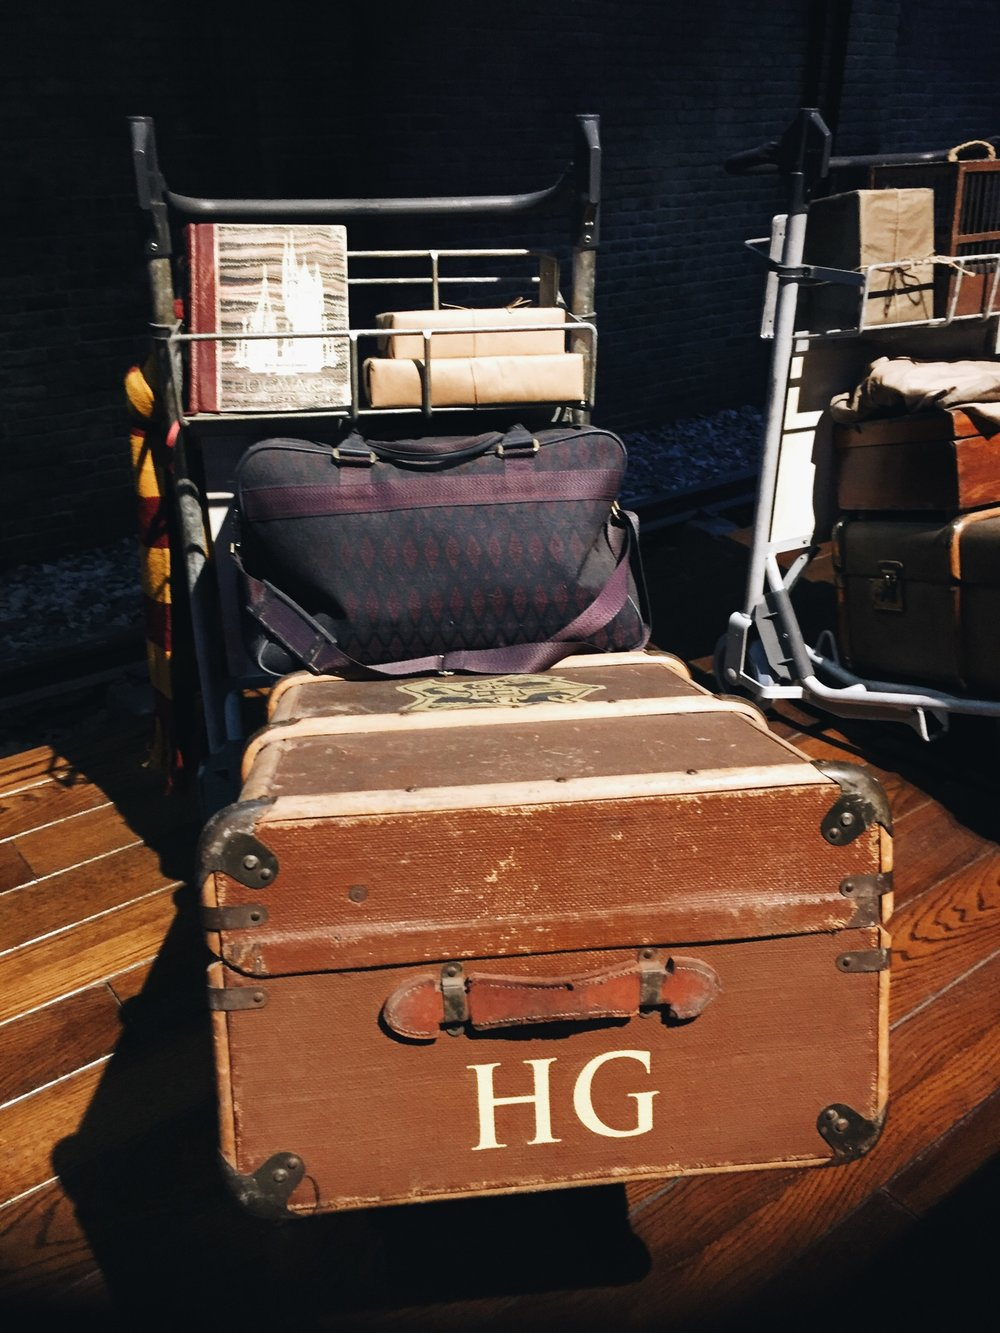 The Making Of Harry Potter: Warner Bros Studio Tour London Luggage